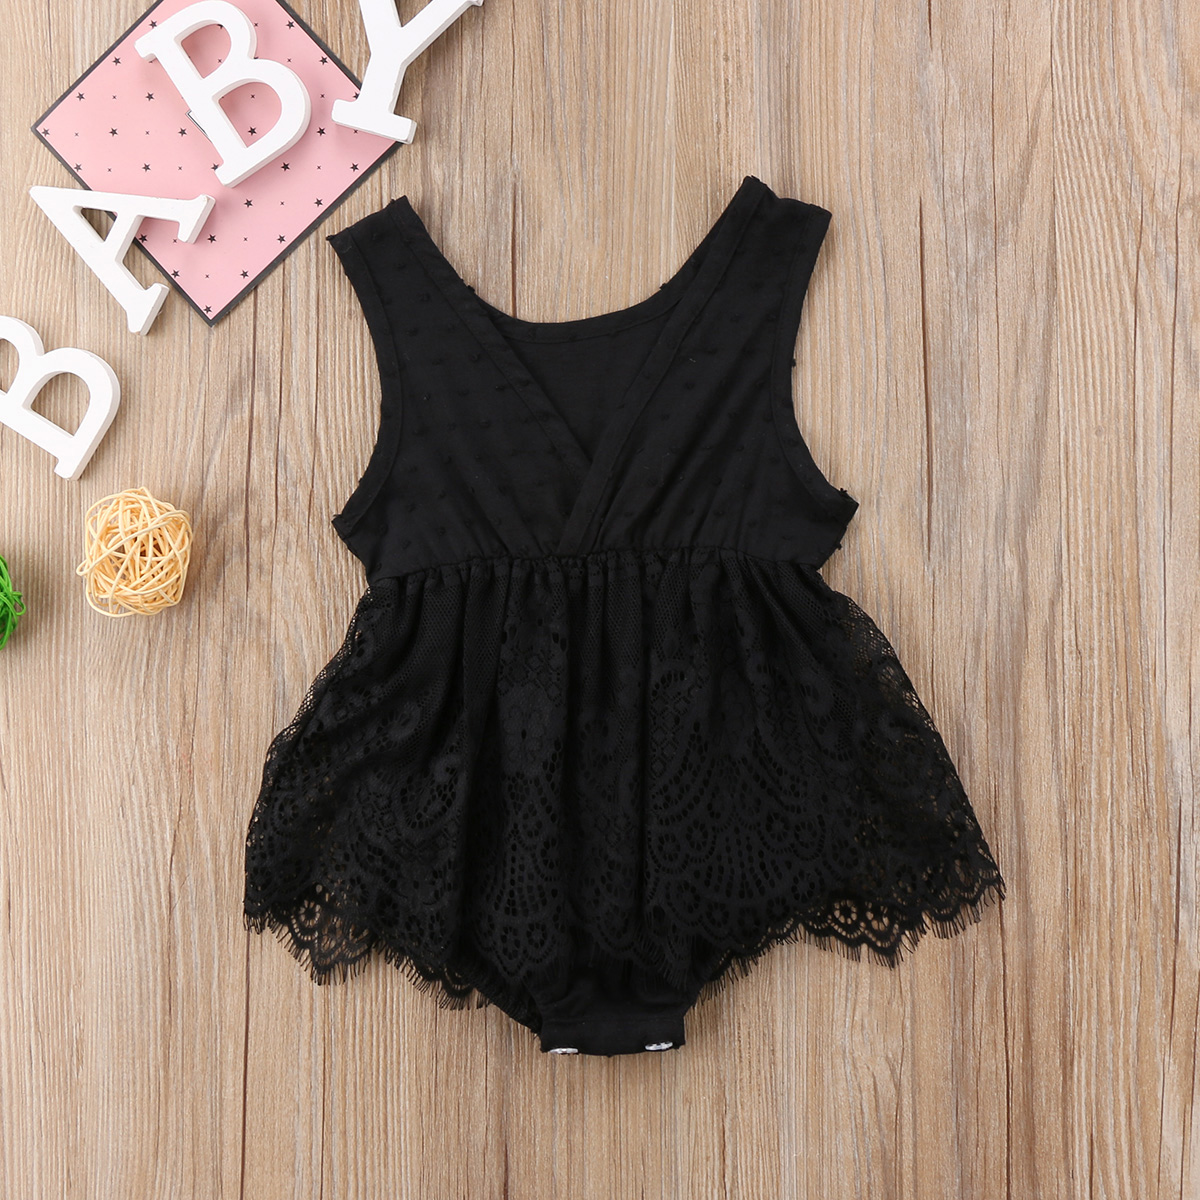 4c9f089e990b Newborn Infant Baby Girls Clothing Tops Lace Romper Sleeveless Cute Ruffles  Jumpsuit Outfits Clothes Baby Girl 0-18M